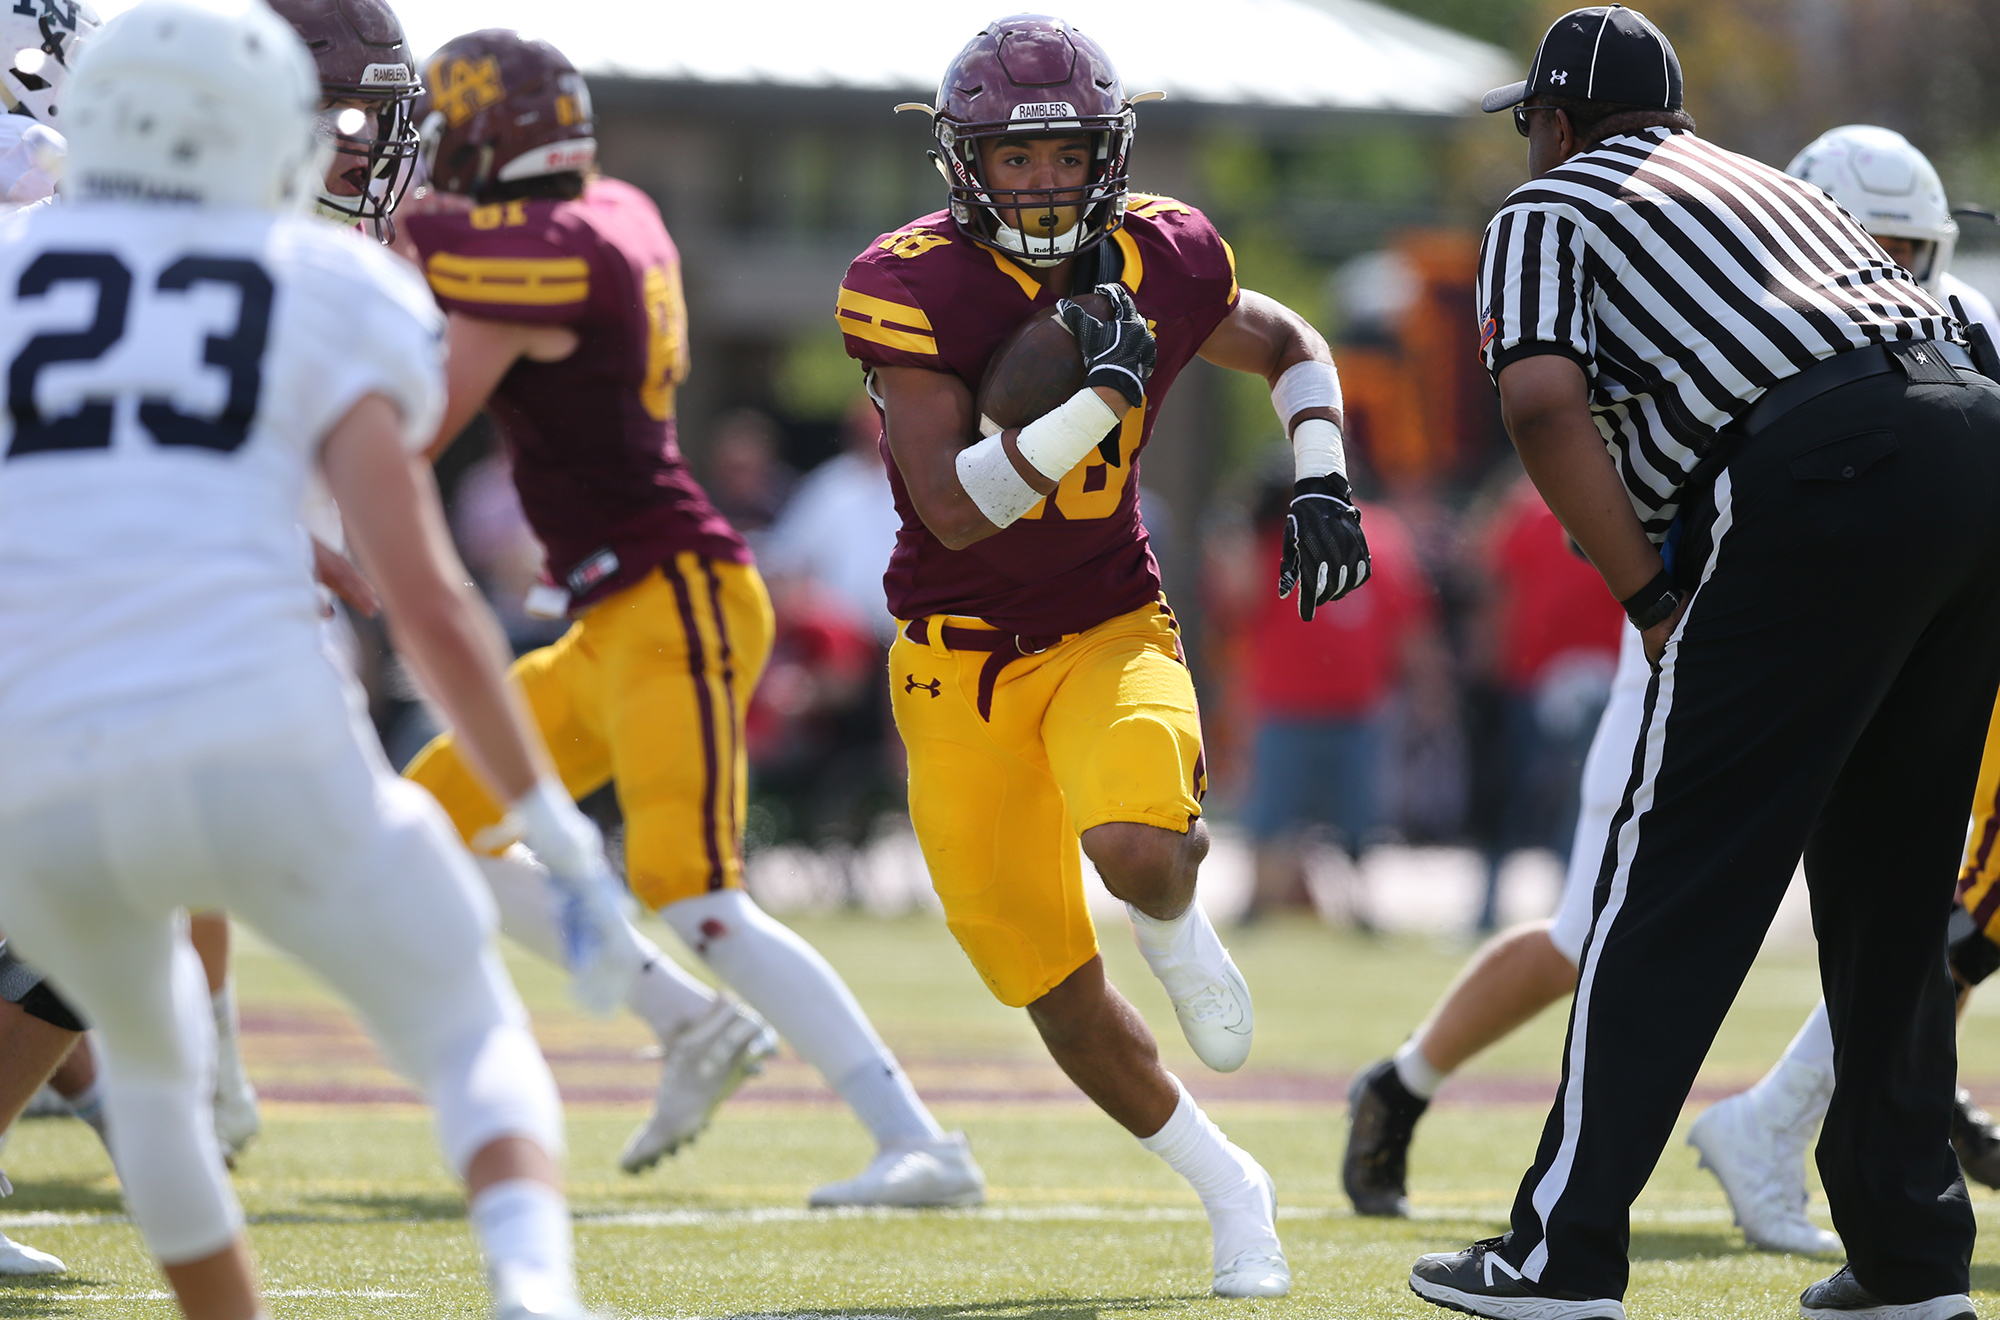 Loyola's Marco Maldonado (18) runs through an opening created by the Ramblers' offensive line.